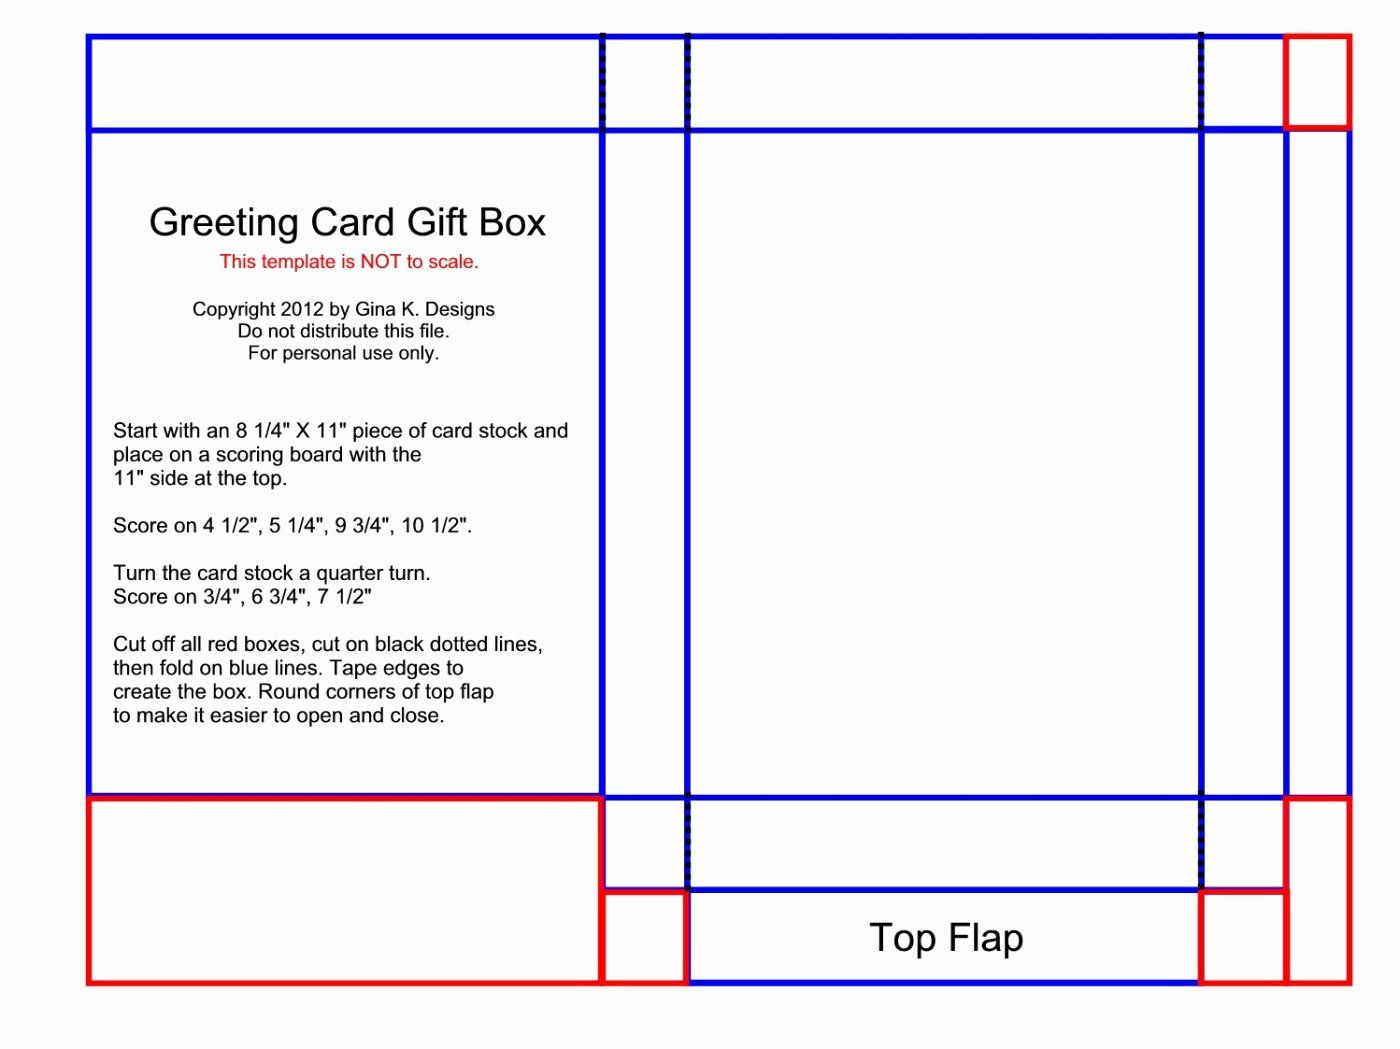 Greetings From Postcard Template Awesome Greeting Card Gift Box Stamptv Greeting Card Gift Box Gift Box Template Greeting Card Box